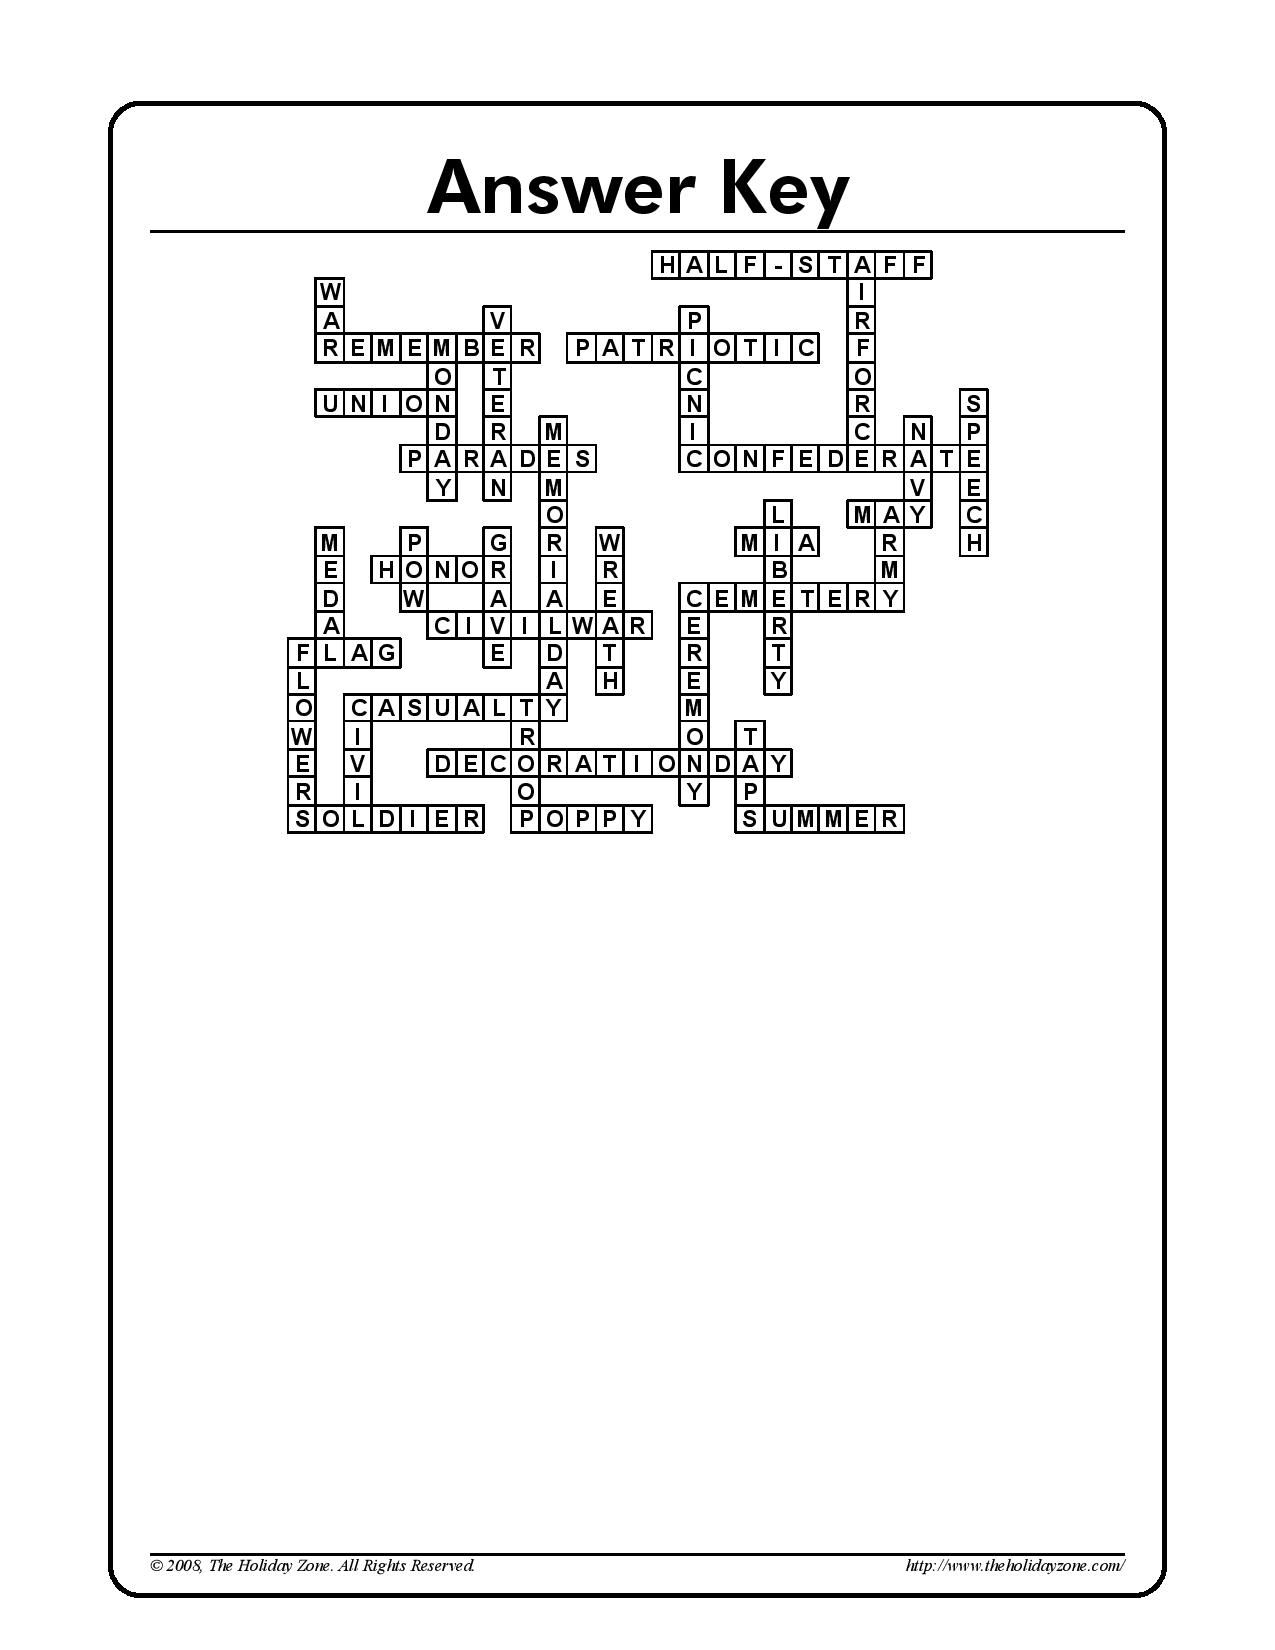 Memorial Day Crossword Puzzle Answer Sheet | Holiday Classroom - Memorial Day Crossword Puzzle Printable